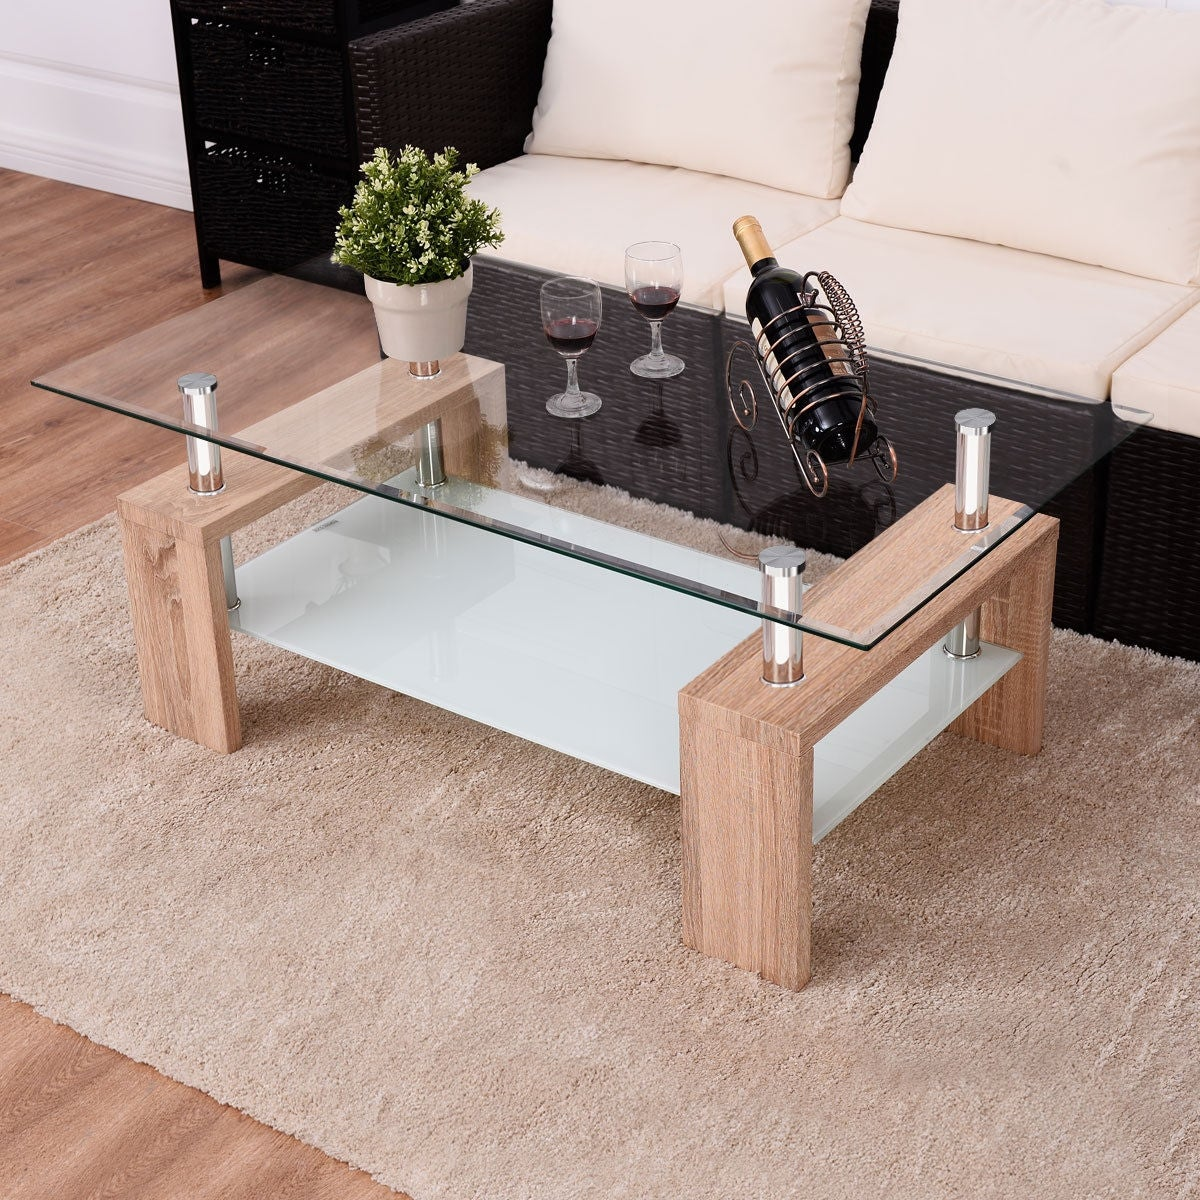 Picture of: Costway Rectangular Tempered Glass Coffee Table W Shelf Wood Living Room Furniture Overstock 16591592